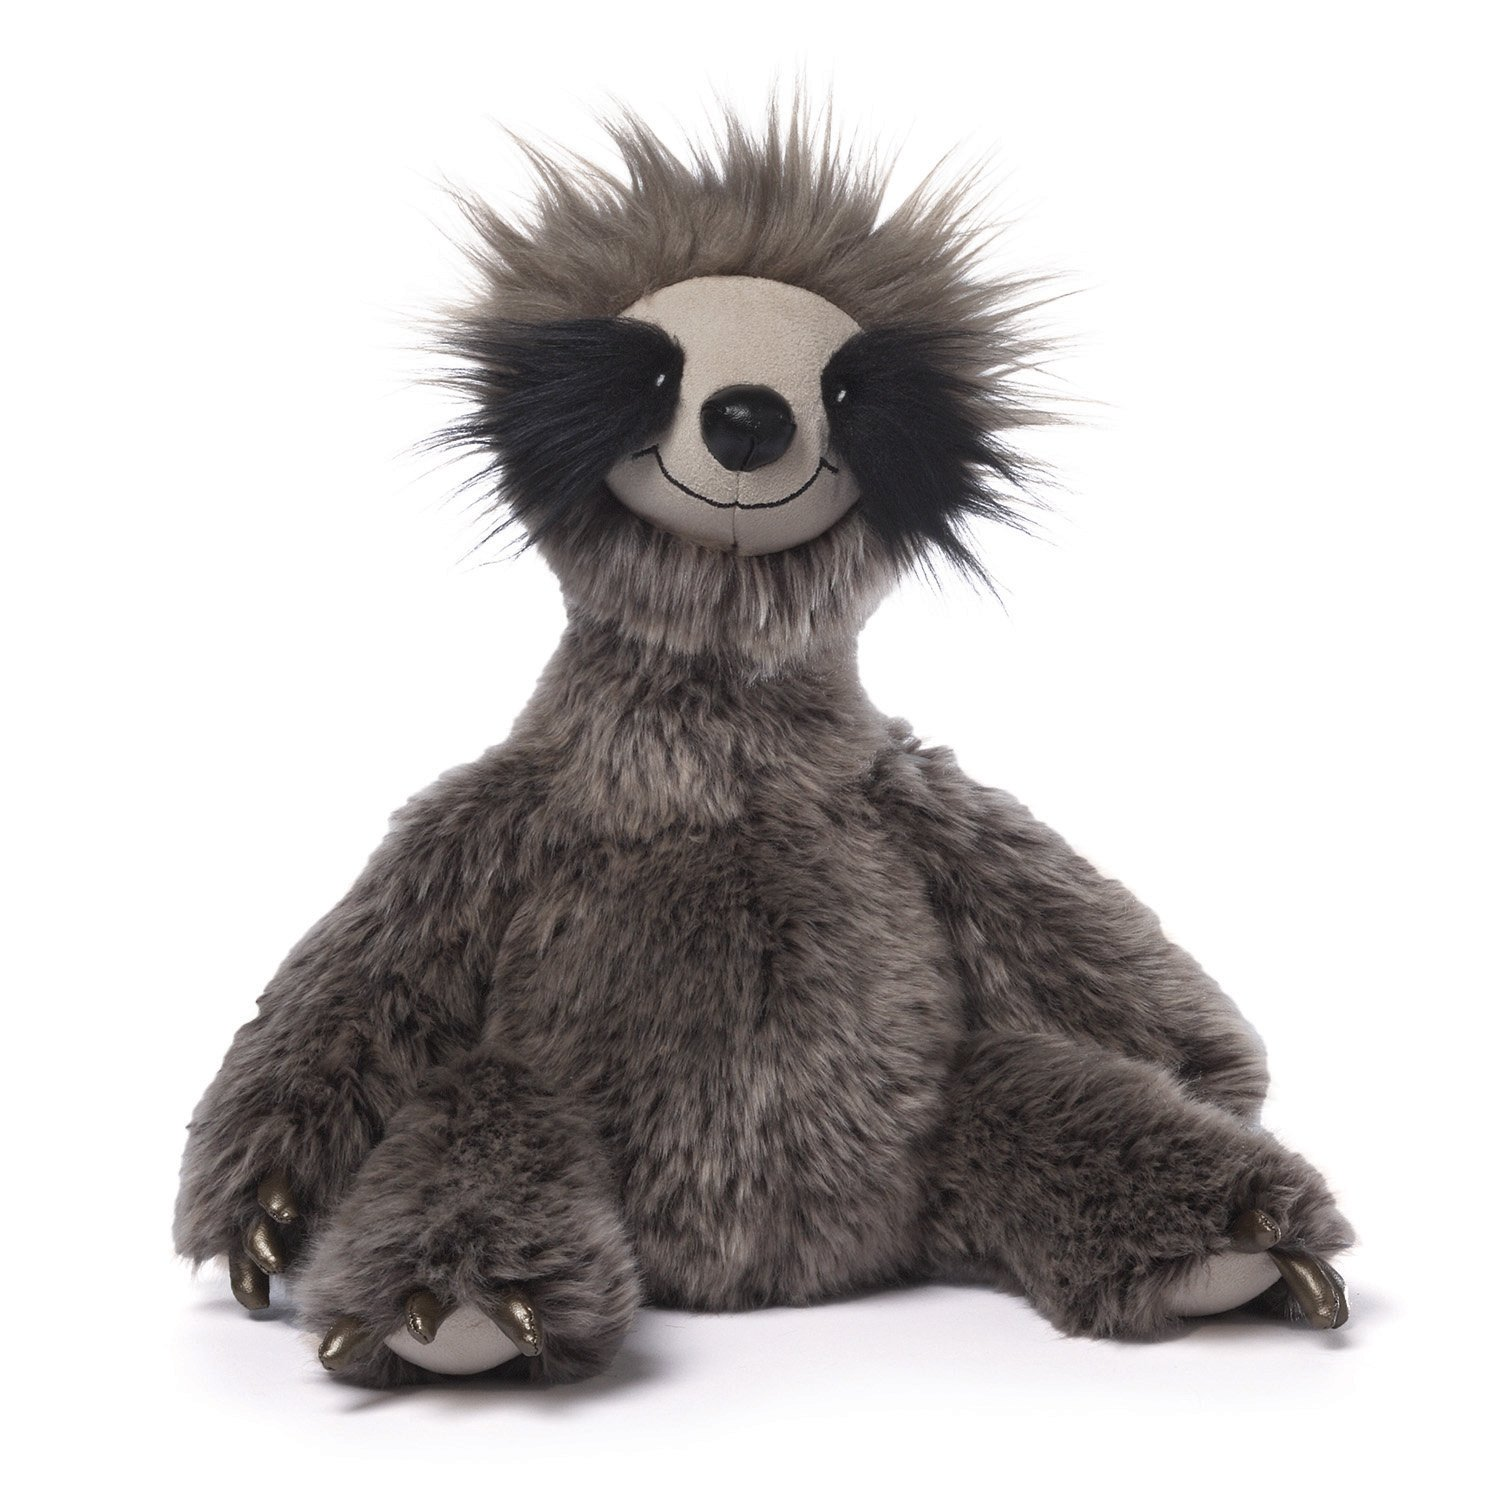 GUND Roswel Sloth Stuffed Animal Plush Dark Gray, 15""